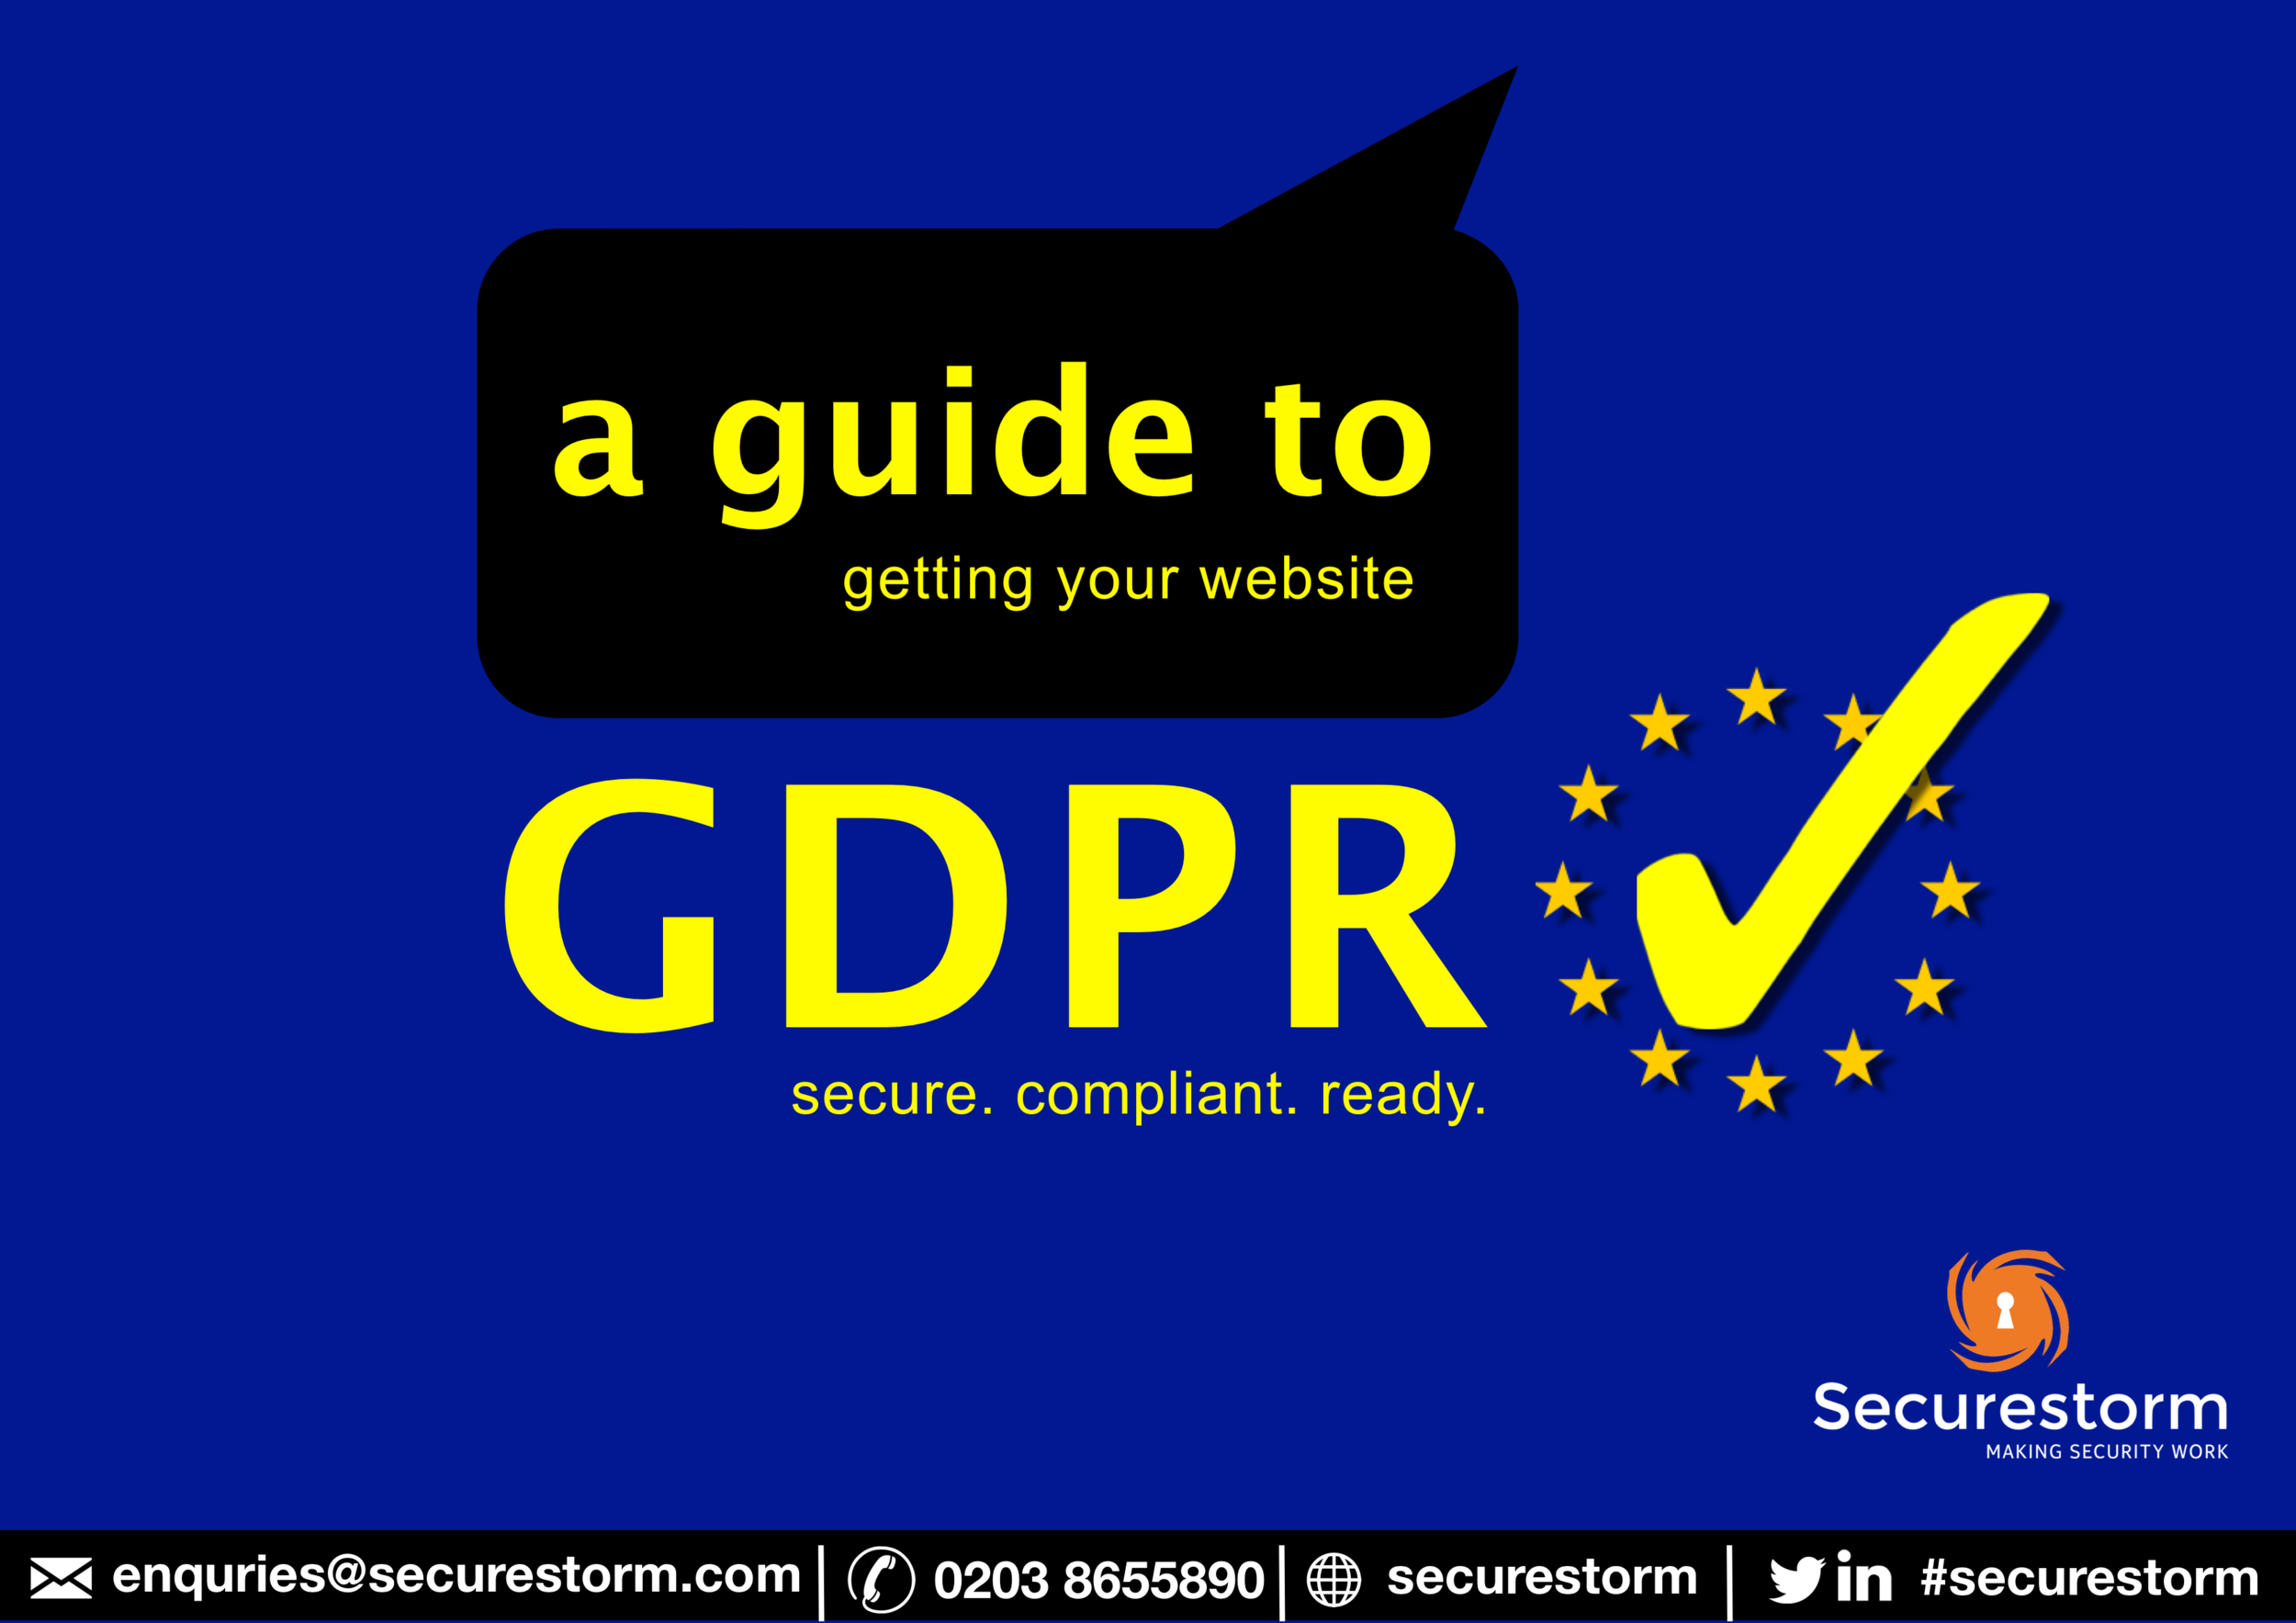 GDPR WEB PNG_1.png